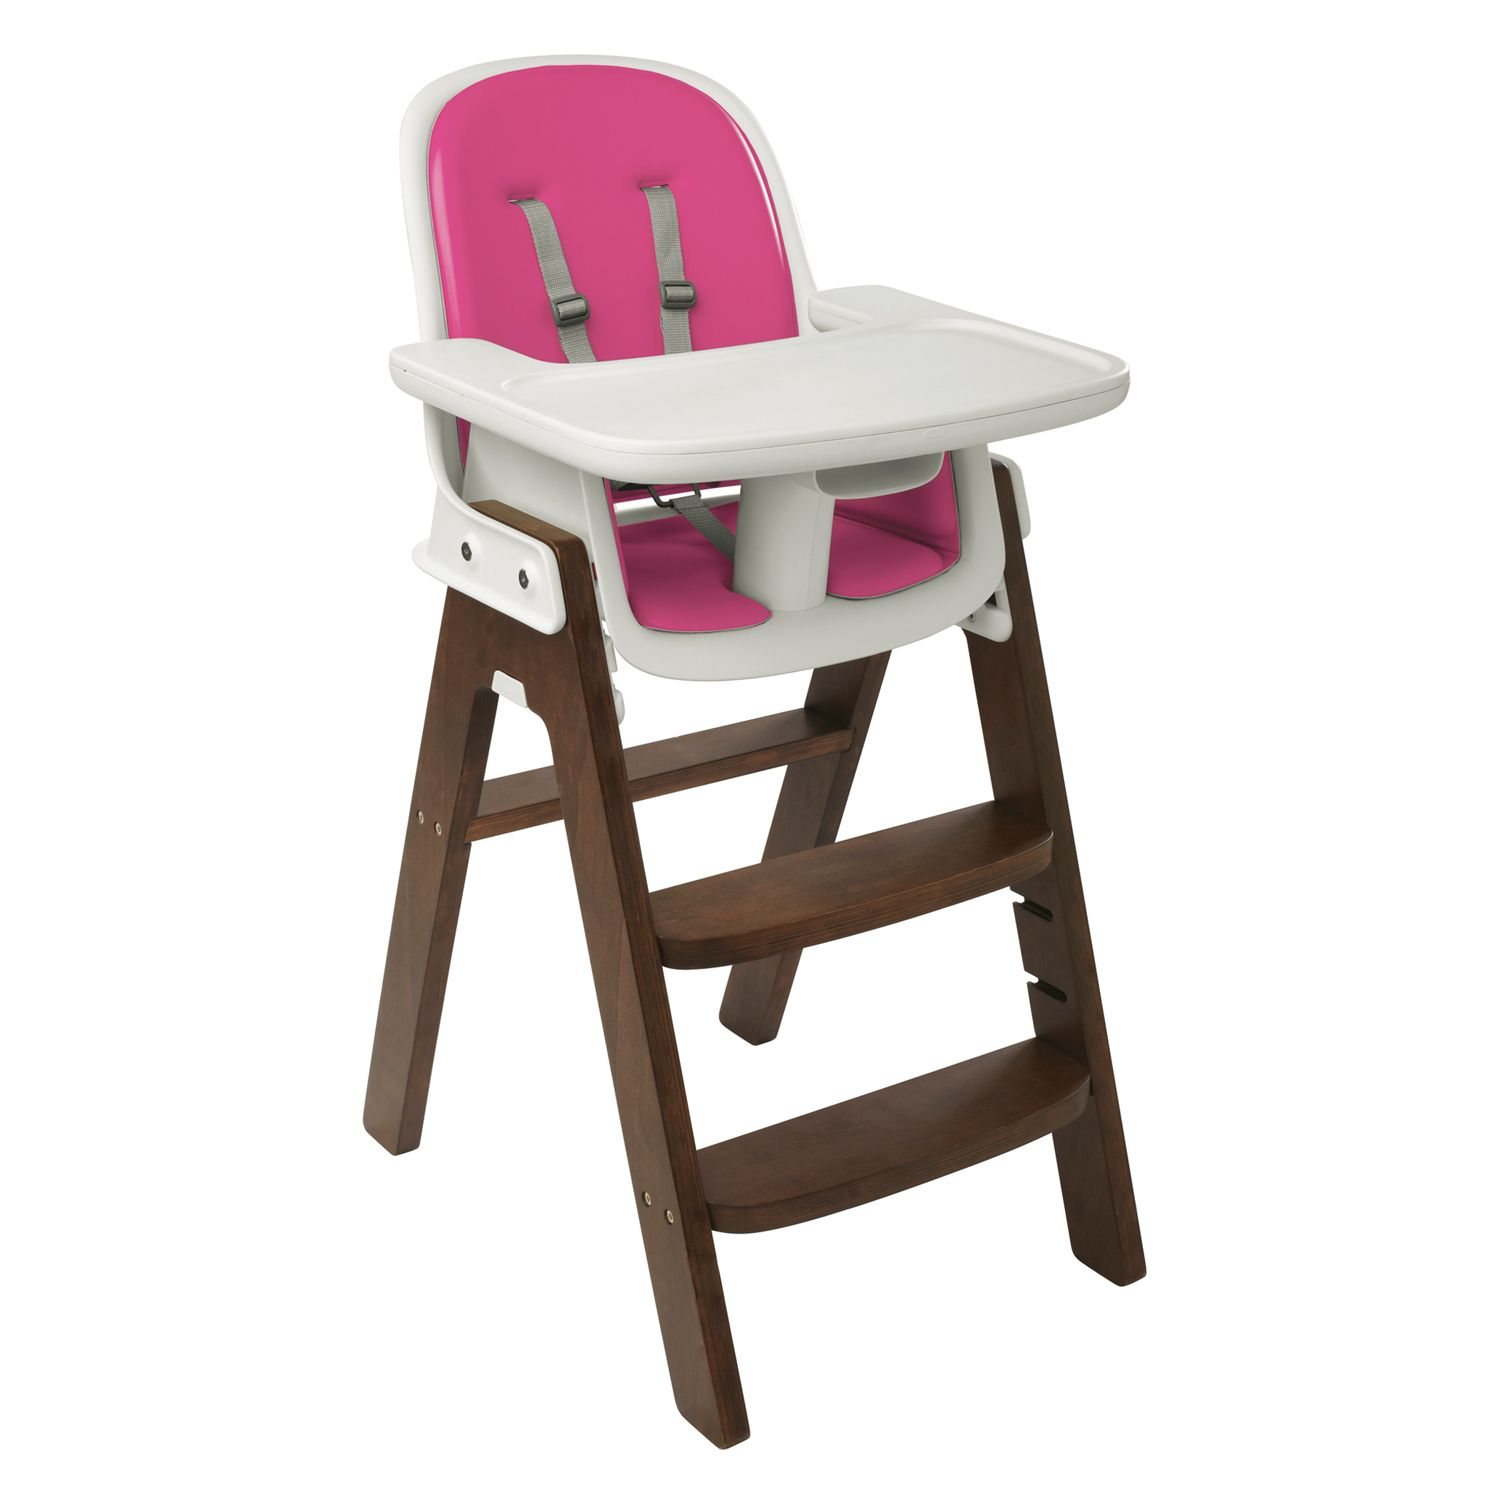 OXO Tot Sprout High Chair Girls Pink Baby Chairs, Gear | Kohl\u0027s